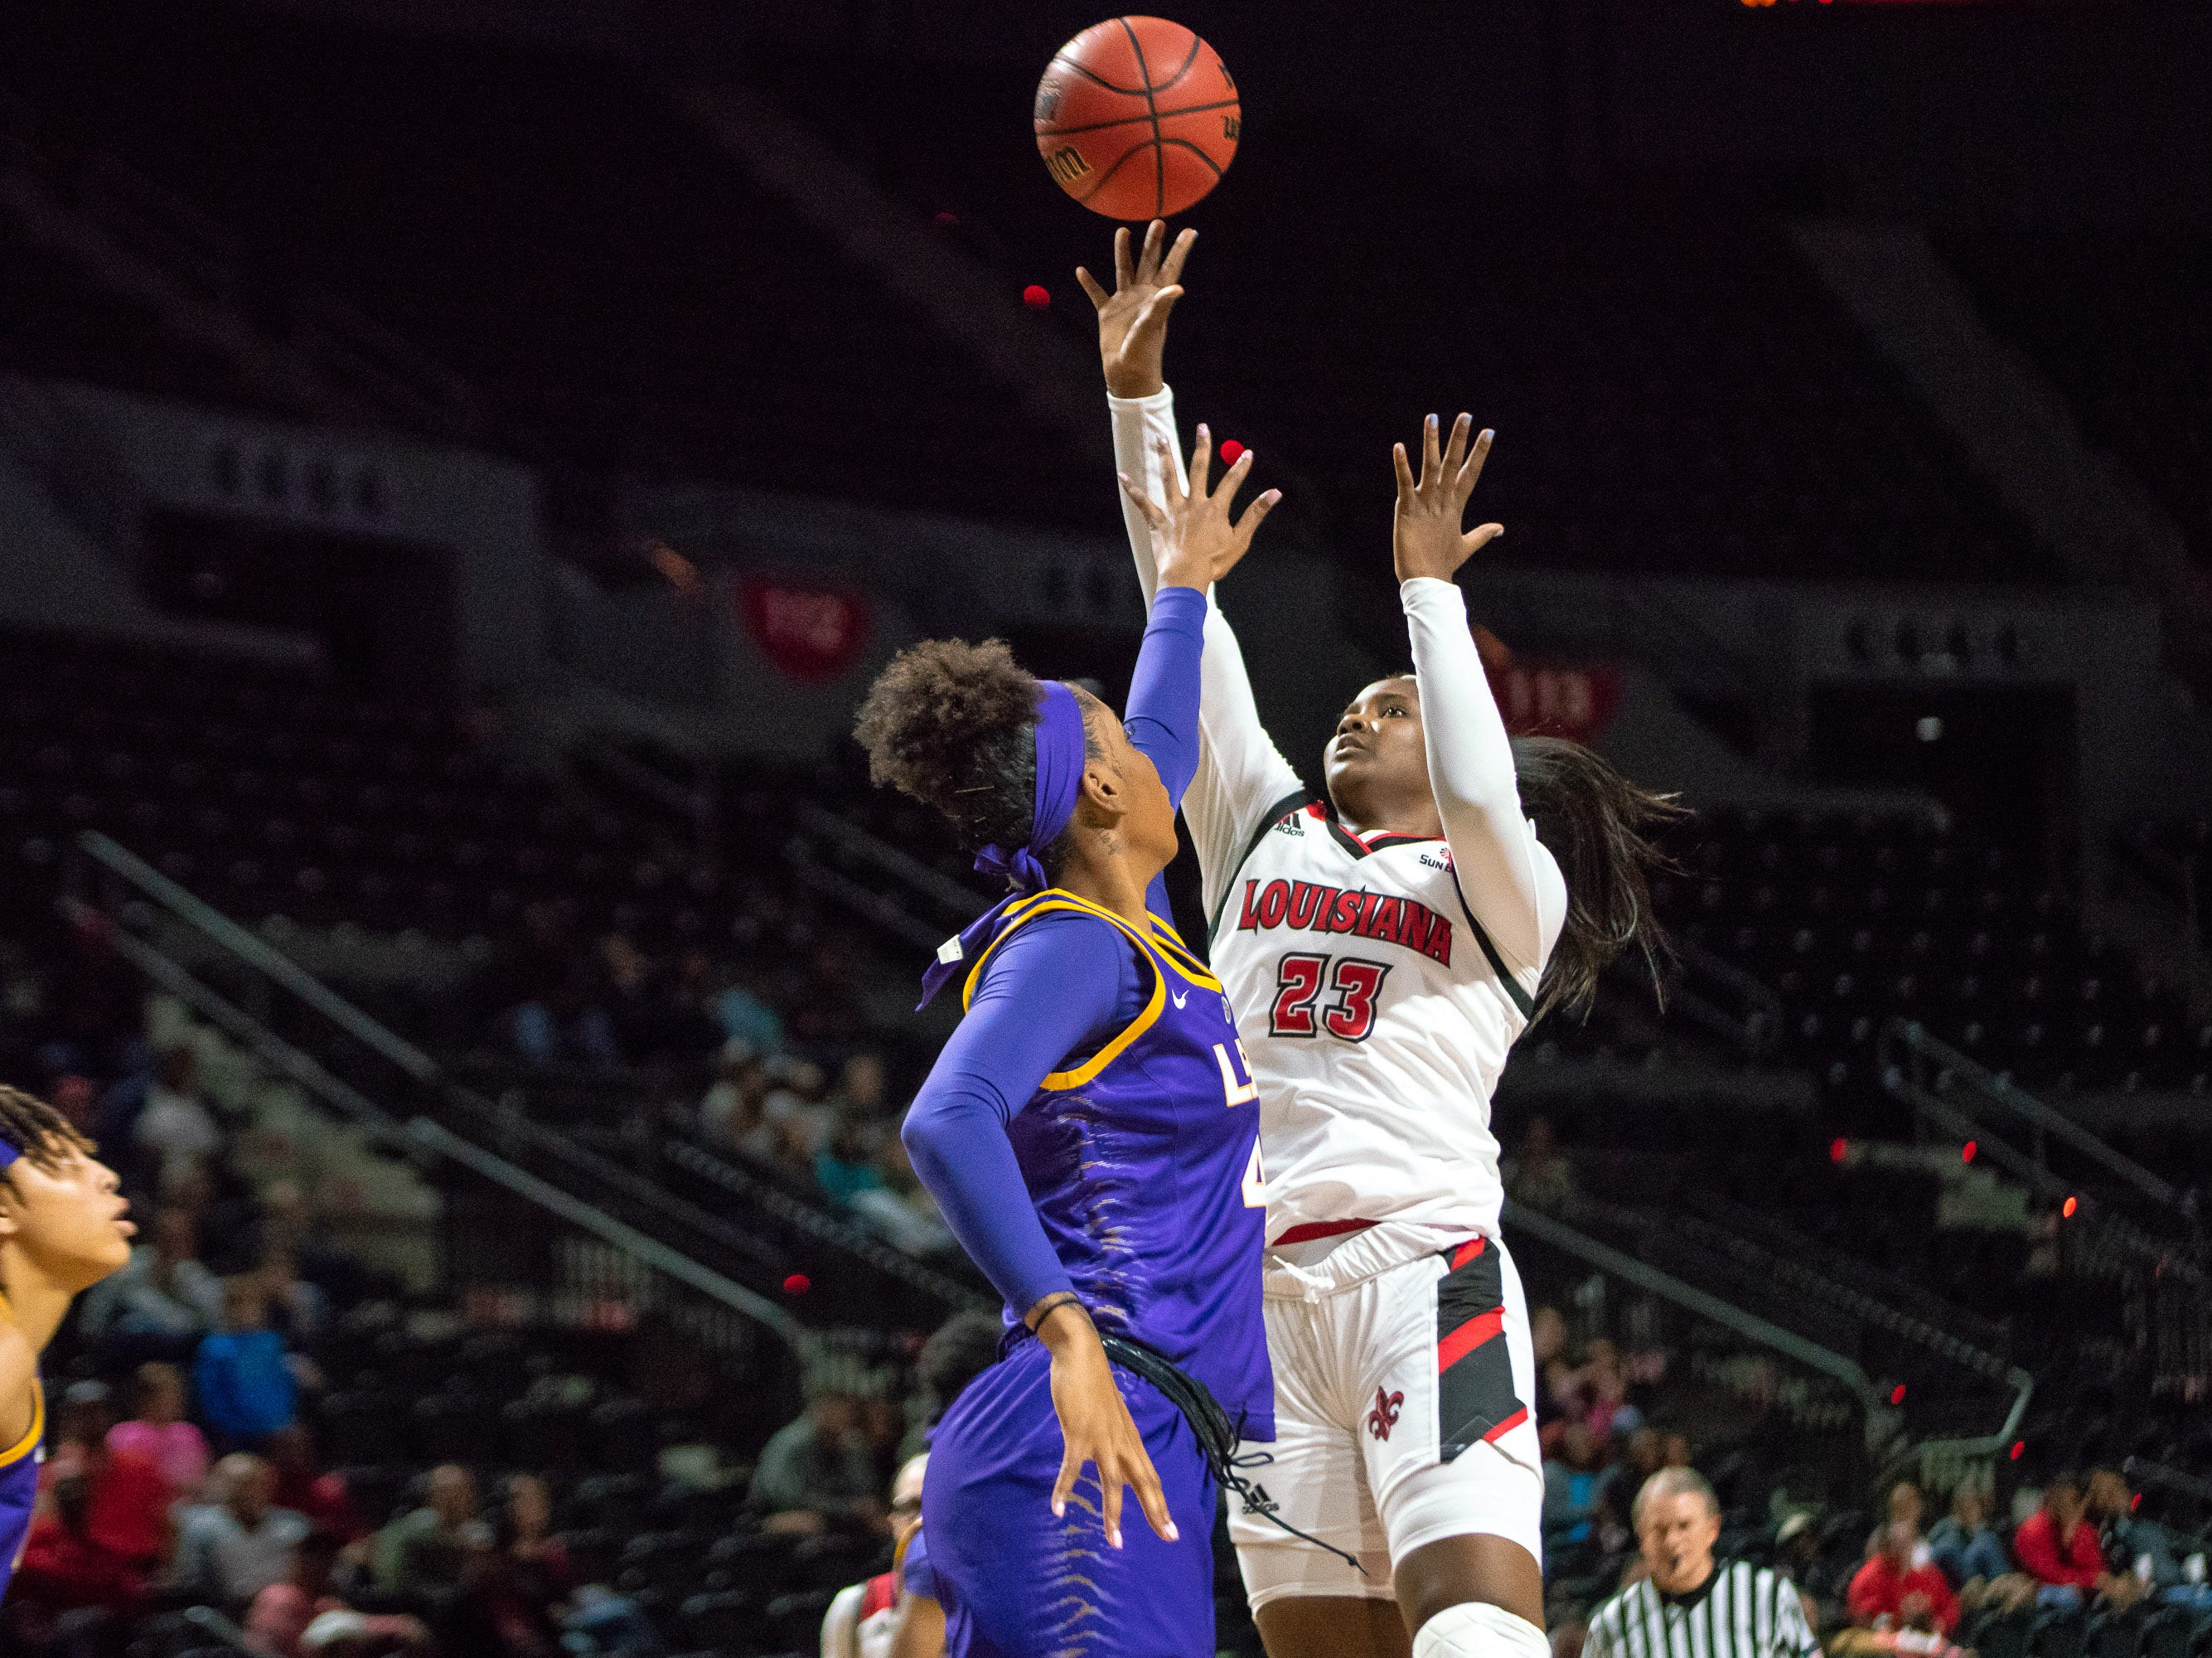 UL's Kristen Daniels shoots over a defender during the play as the Ragin' Cajuns play against LSU Tigers at the Cajundome on Dec. 20, 2018.